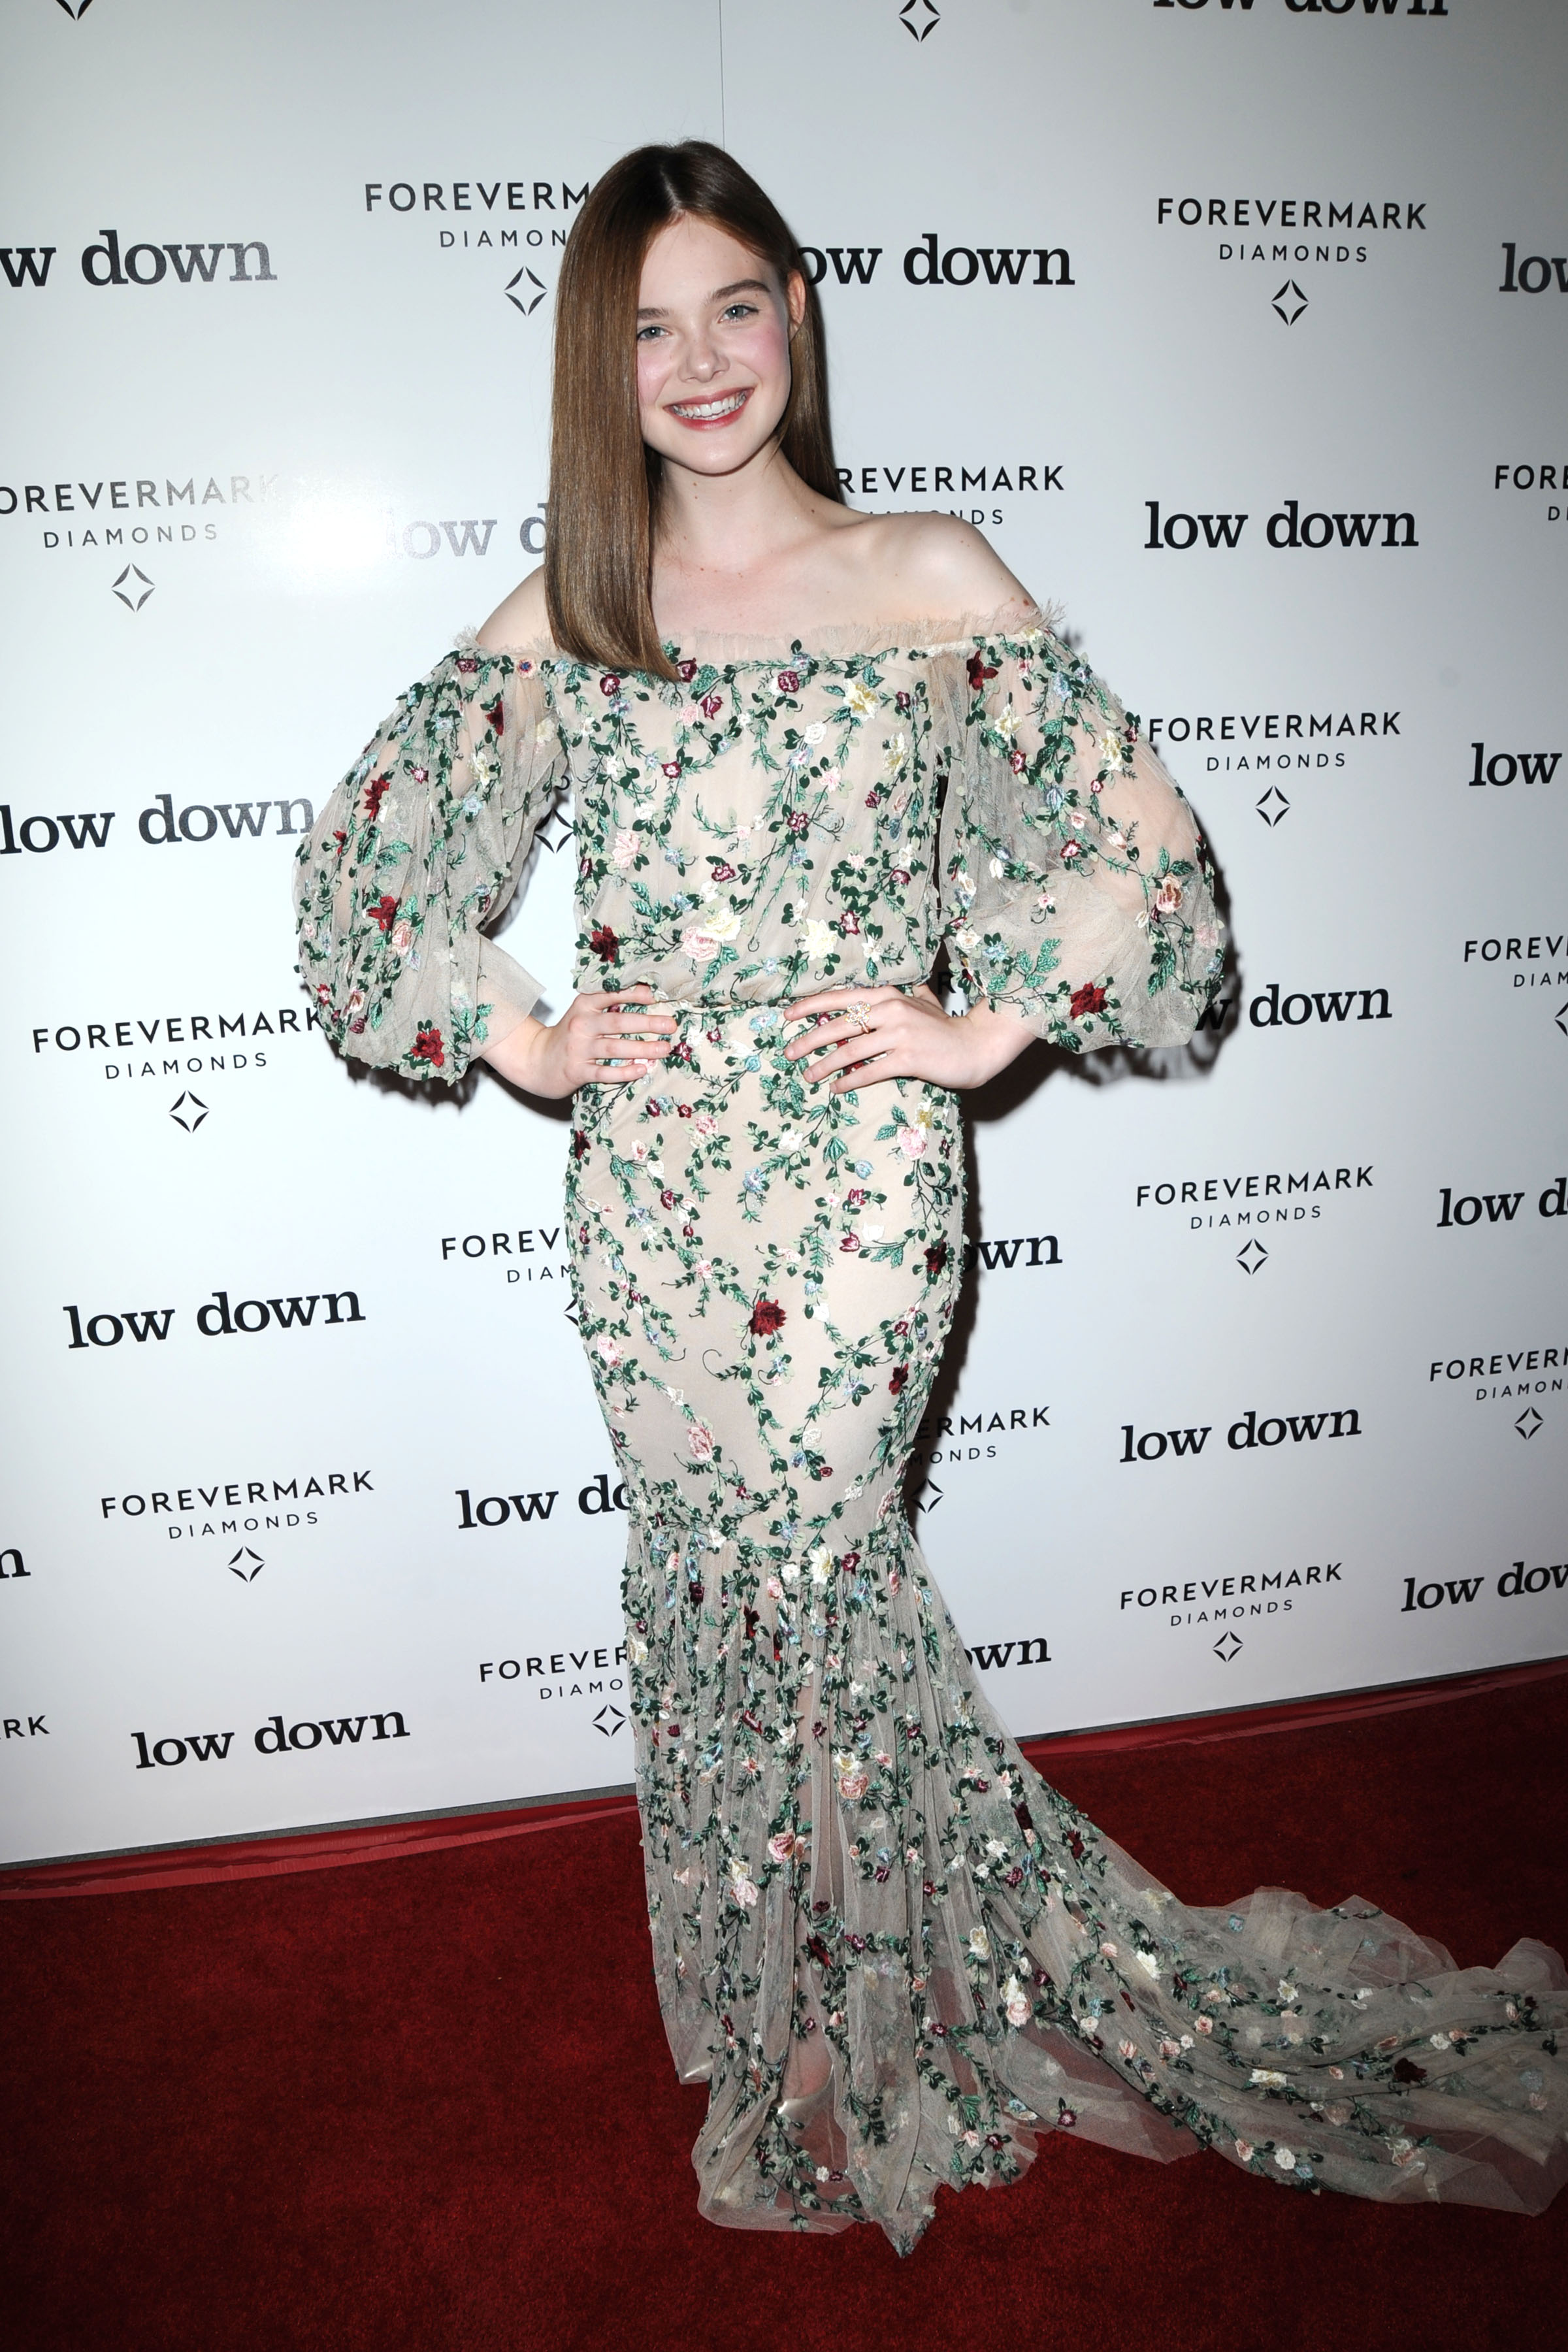 Elle Fanning in Forevermark Diamonds at Low Down Premiere1.JPG